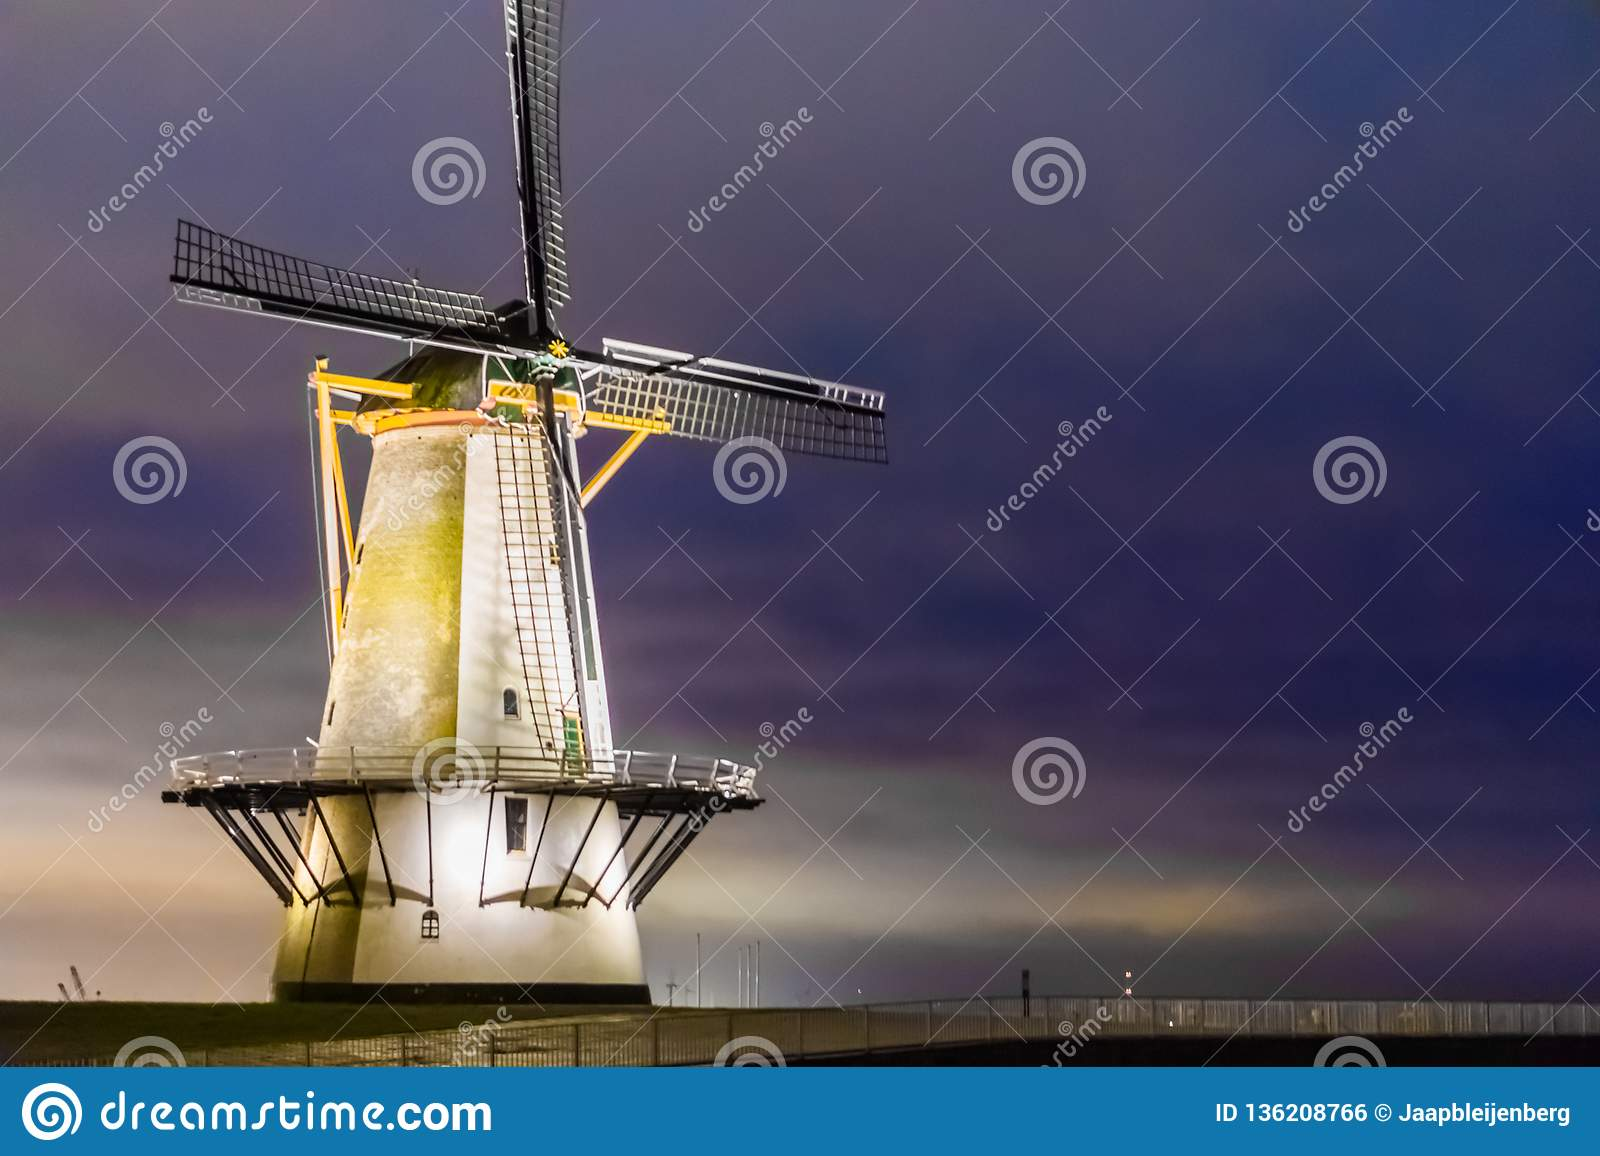 The windmill of Vlissingen by night, typical dutch scenery, historic buildings, Zeeland, the Netherlands